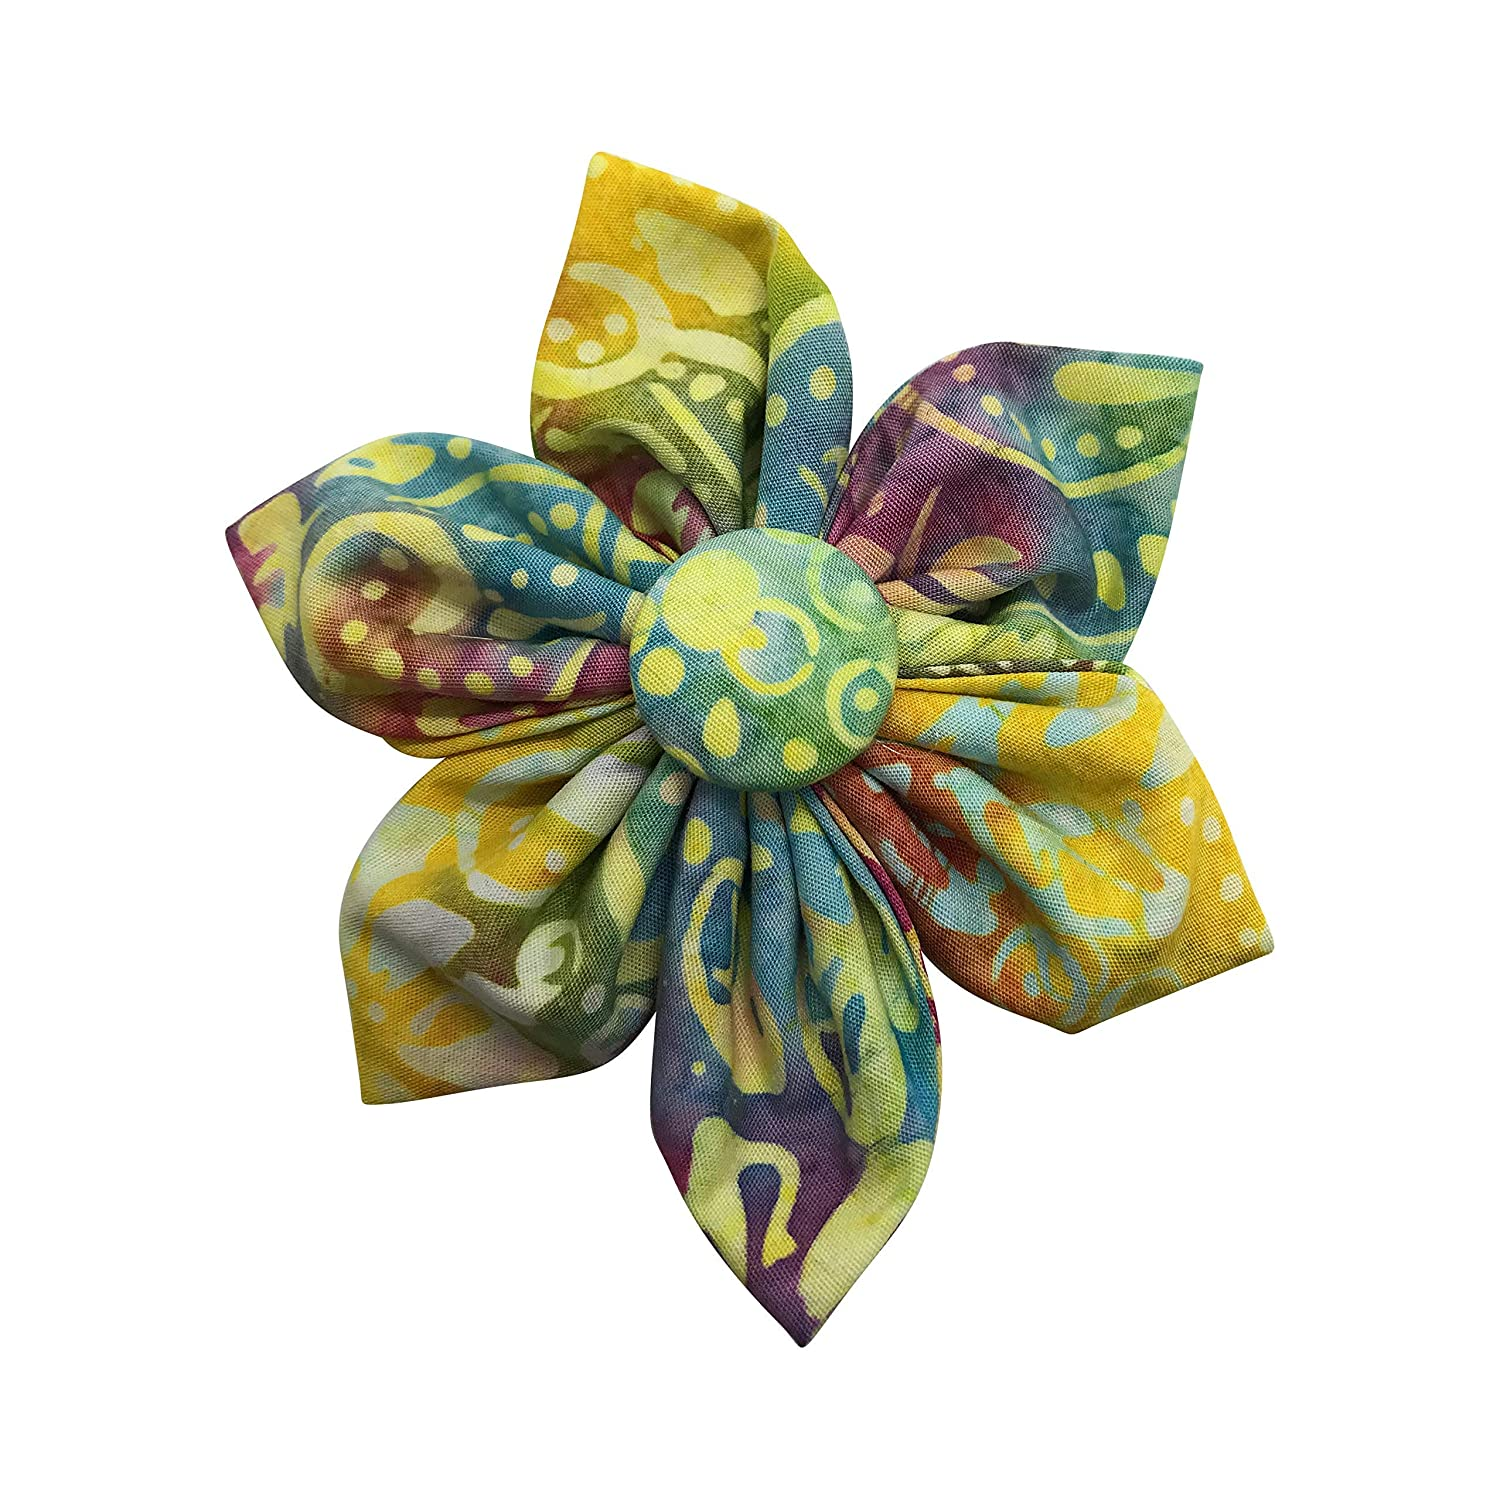 Handmade Flower Girls Hair Clip Max 41% OFF with Sale item Bow Alligator